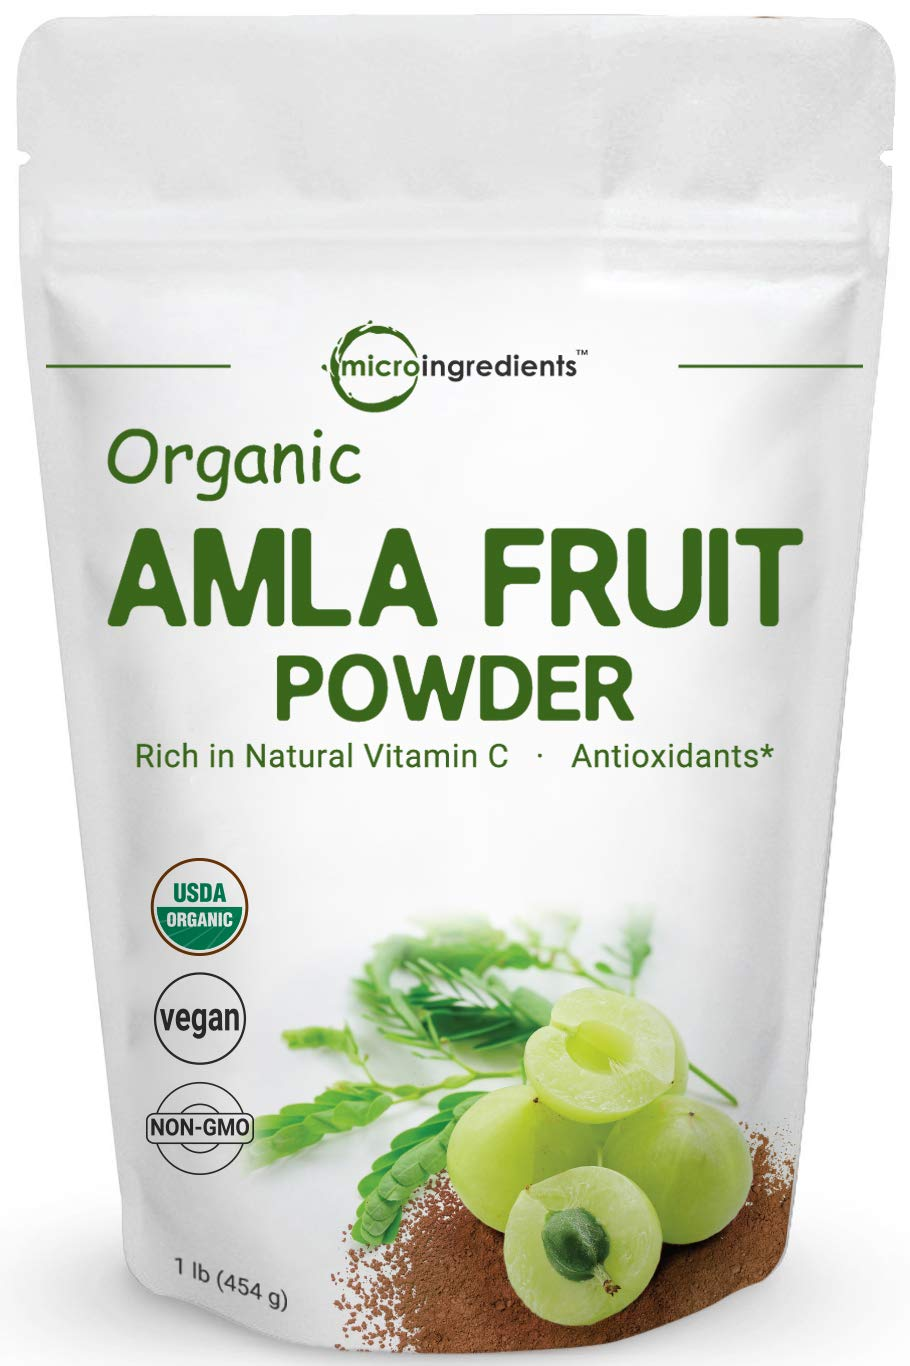 Organic Amla Powder (Amalaki),1 Pound (16 Ounce), Natural Vitamin C, Antioxidant and Flavonoids, Strongly Supports Immune System, Energy and Fat Burn, Non-GMO and Vegan Friendly